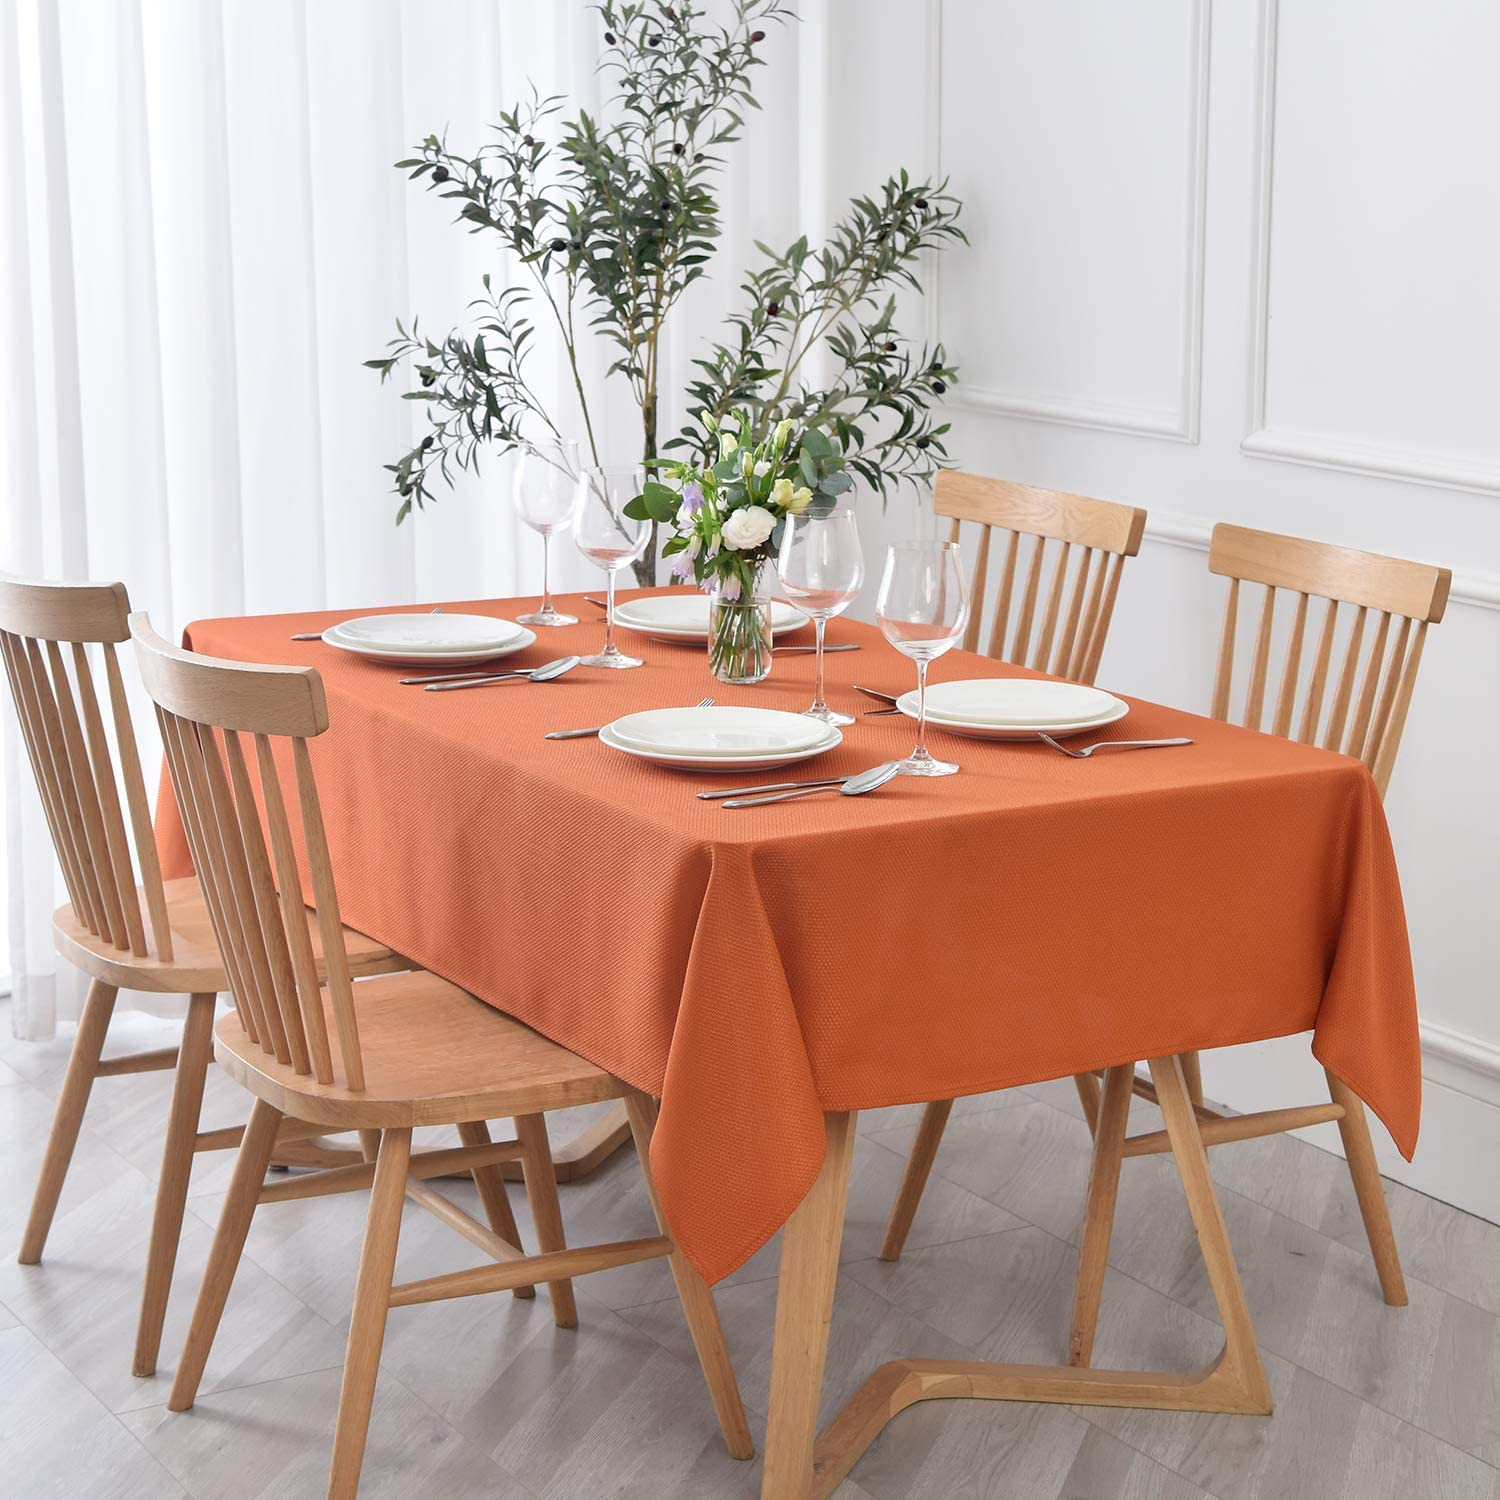 maxmill Textured Rectangle Tablecloth Ranking integrated 1st Popular overseas place Water Resistant Fr Wrinkle